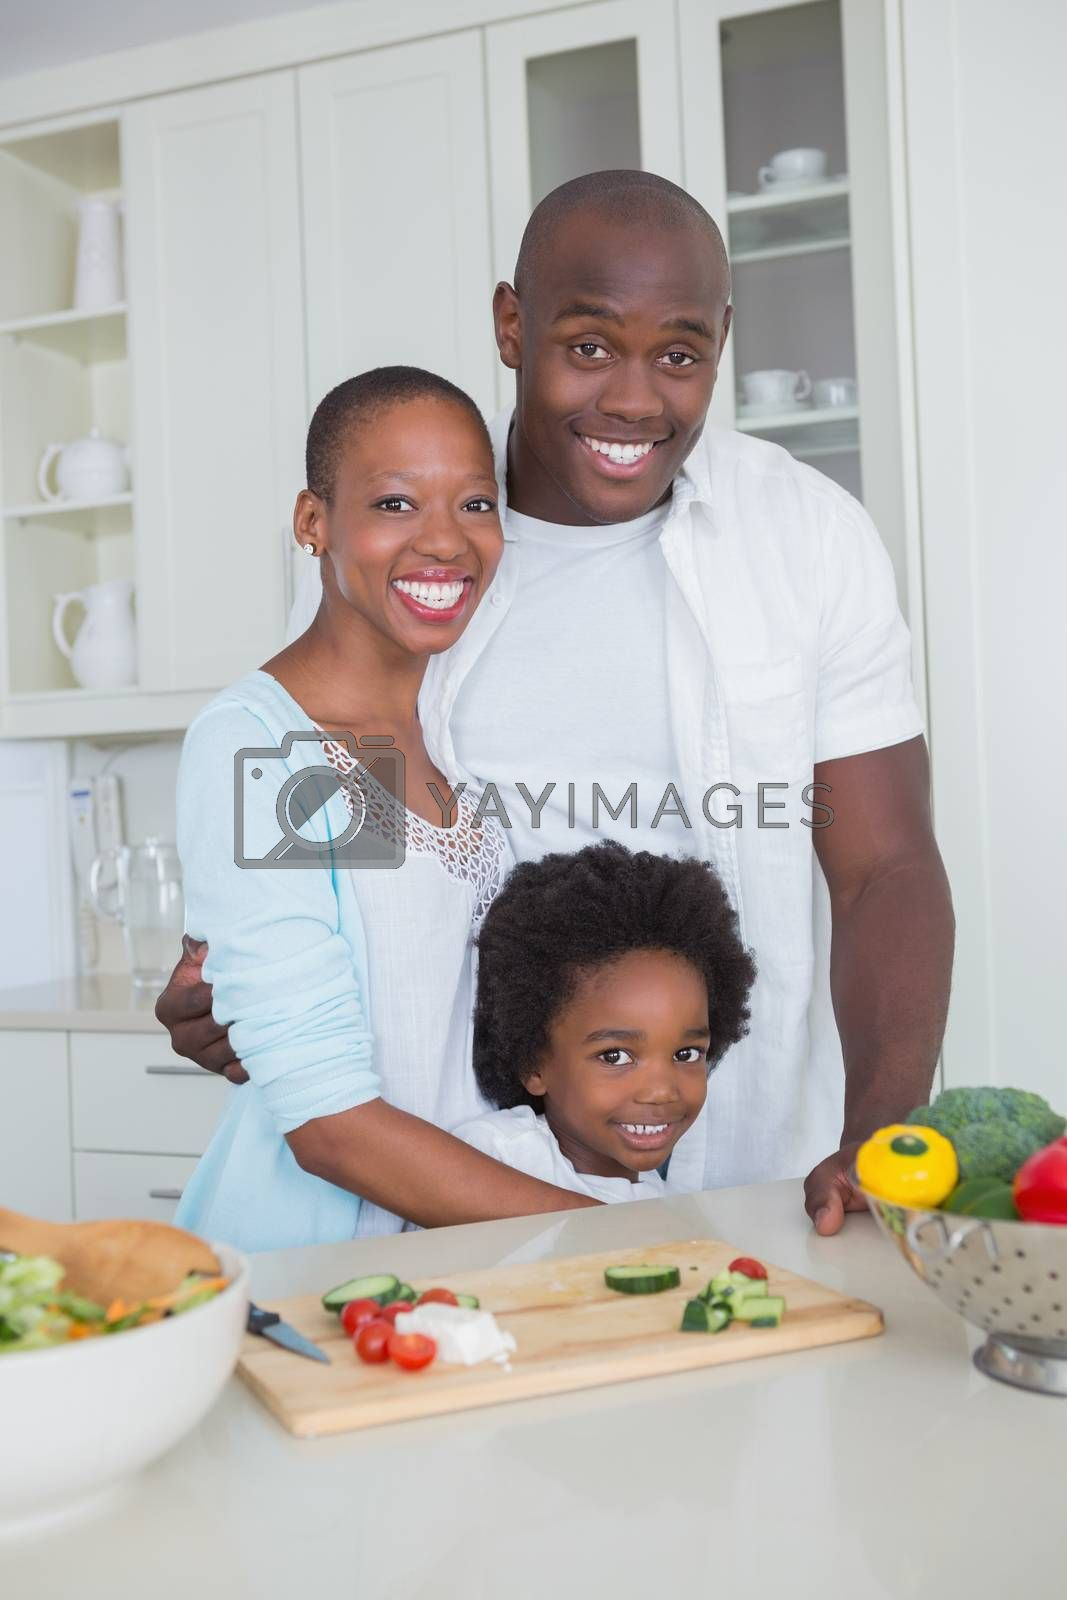 Royalty free image of Portrait of a happy family preparing vegetables together  by Wavebreakmedia